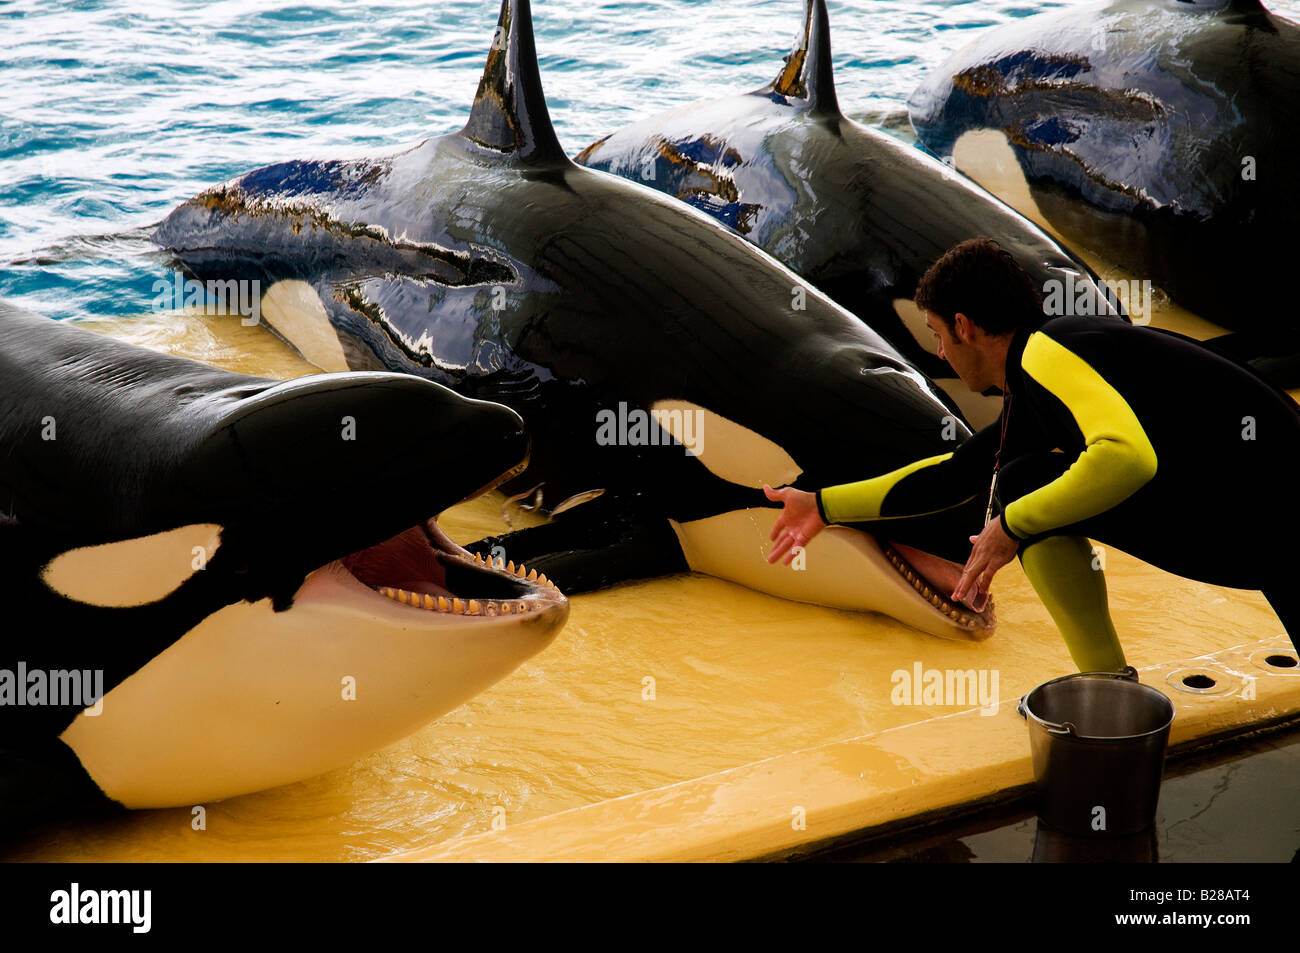 Handler feeding some killer whales during the Orca Show in Loro Parque, Puerto de la Cruz, Tenerife, Spain - Stock Image